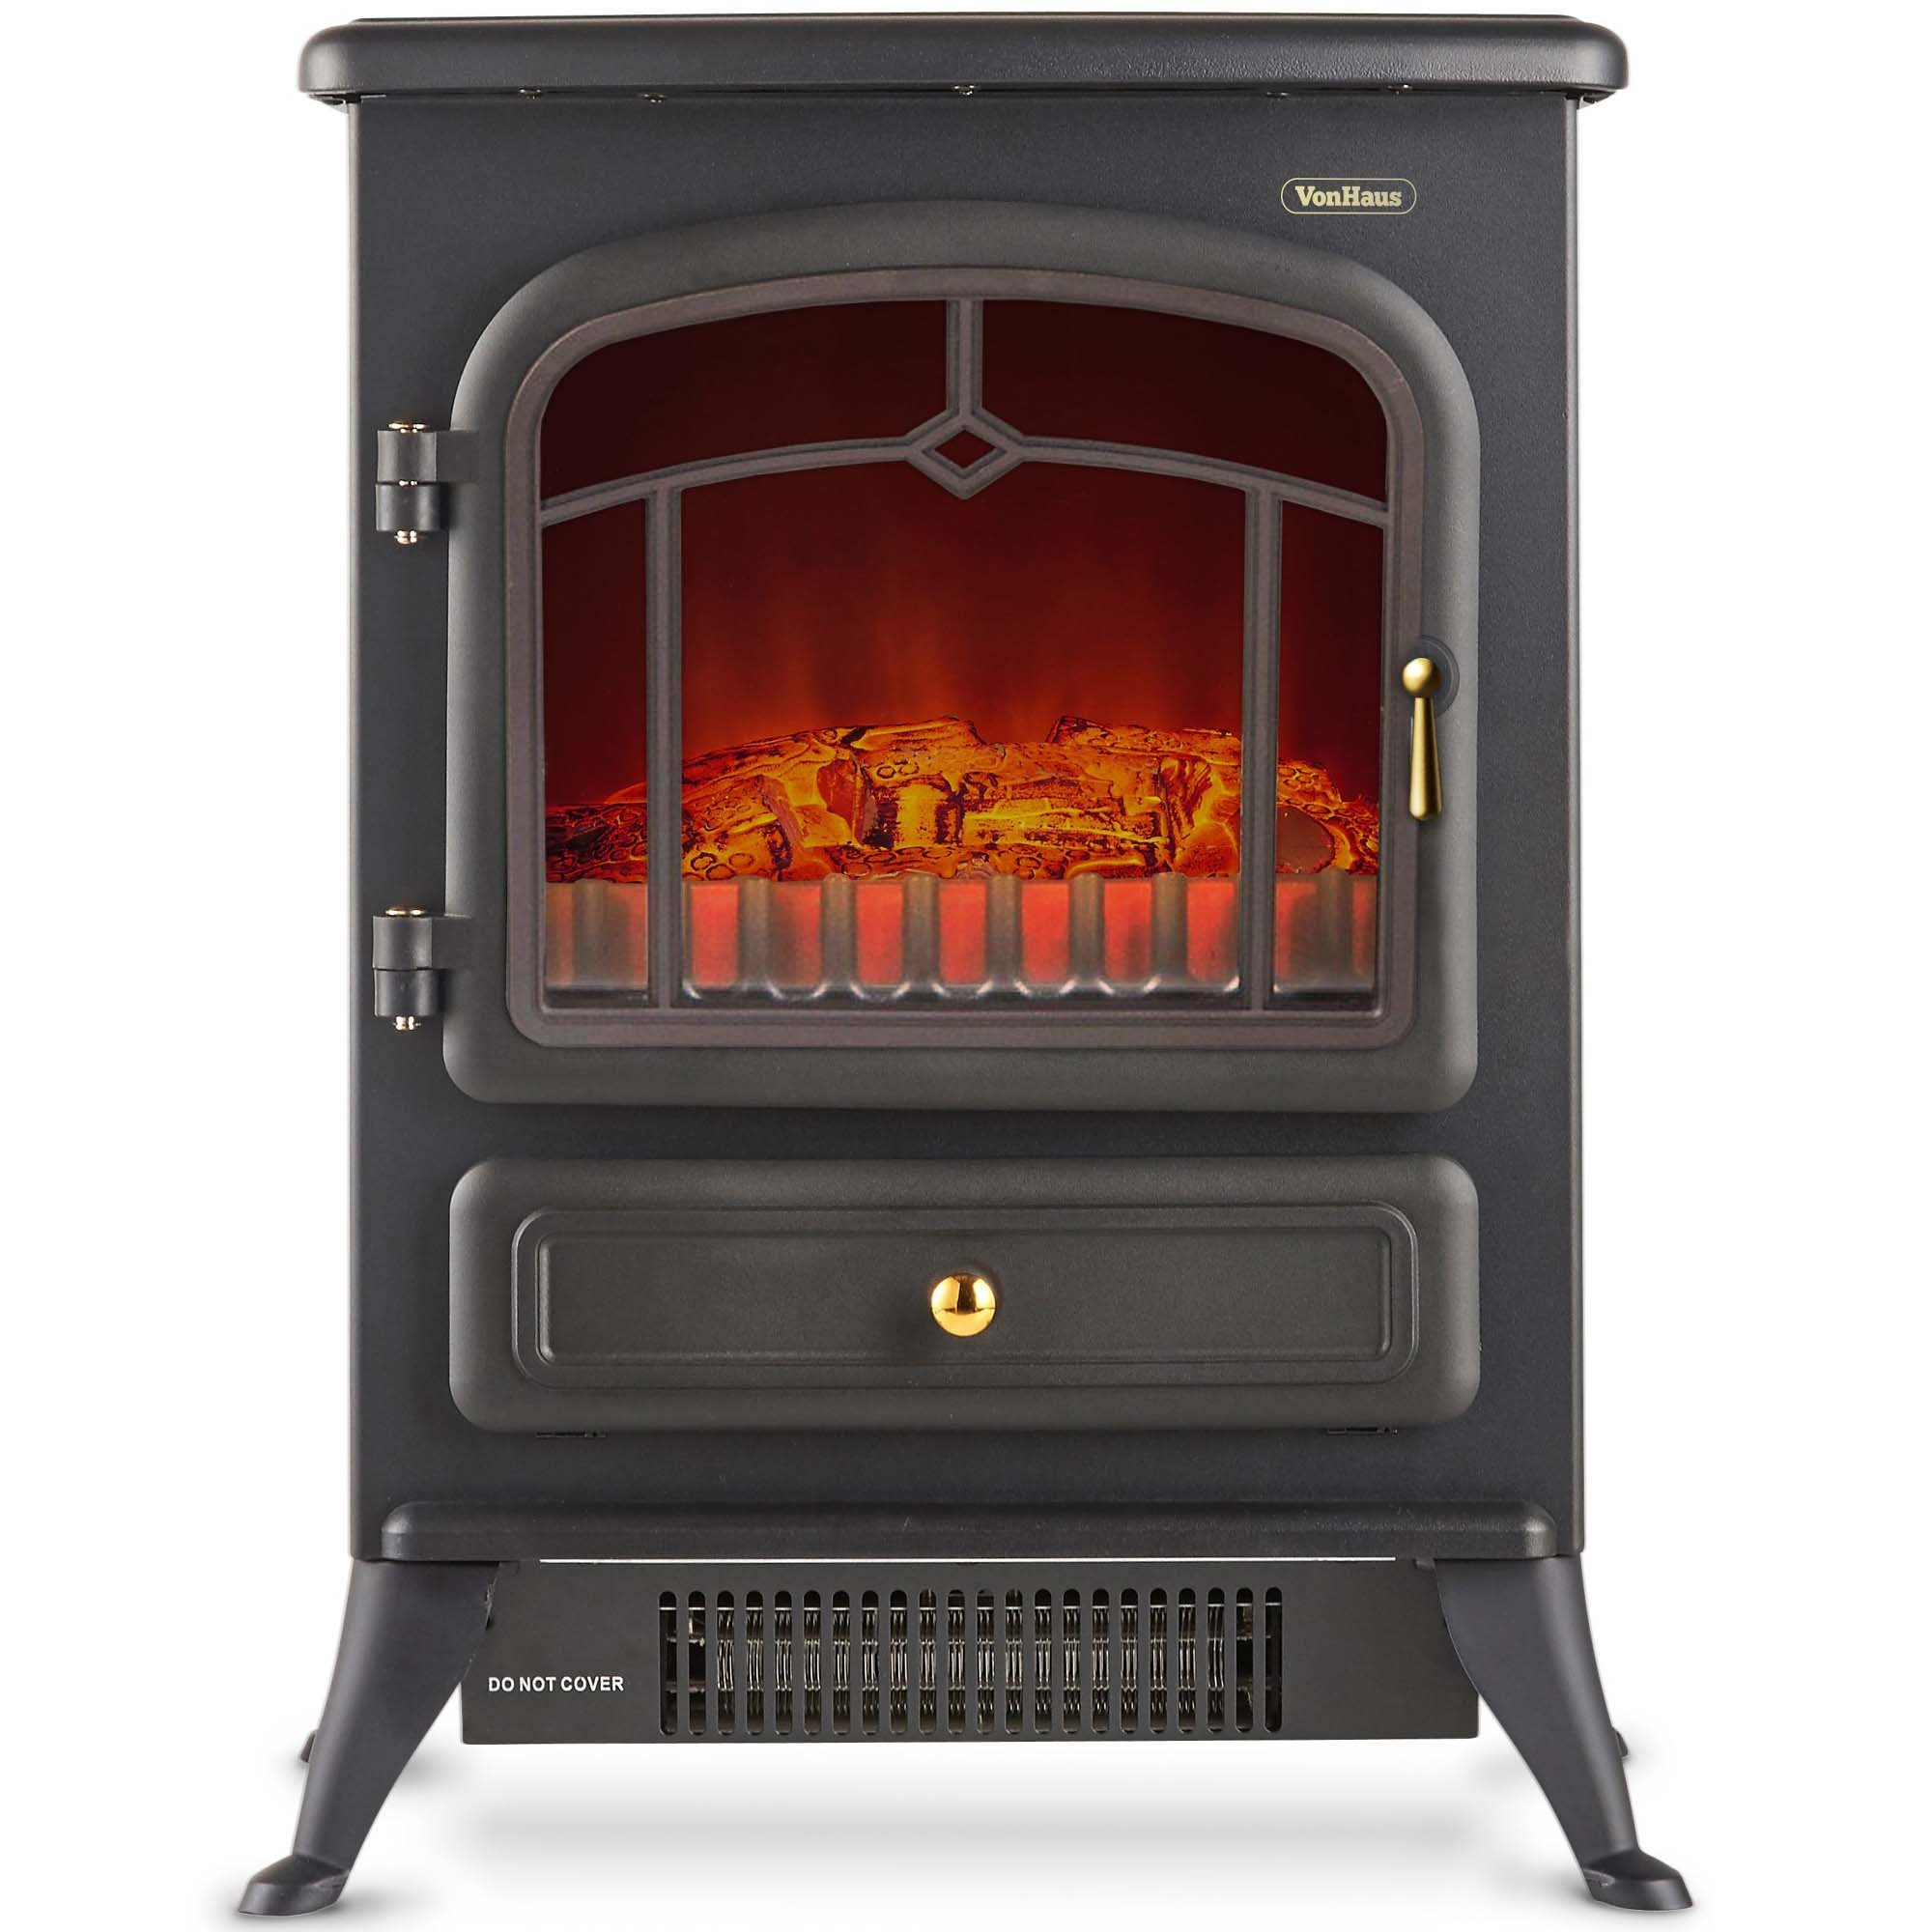 VonHaus Electric Stove Heater Fireplace with Realistic Log Wood Burning Flame Effect and 2 Heat Settings - Portable Free Standing Space Heater 1500W - Black